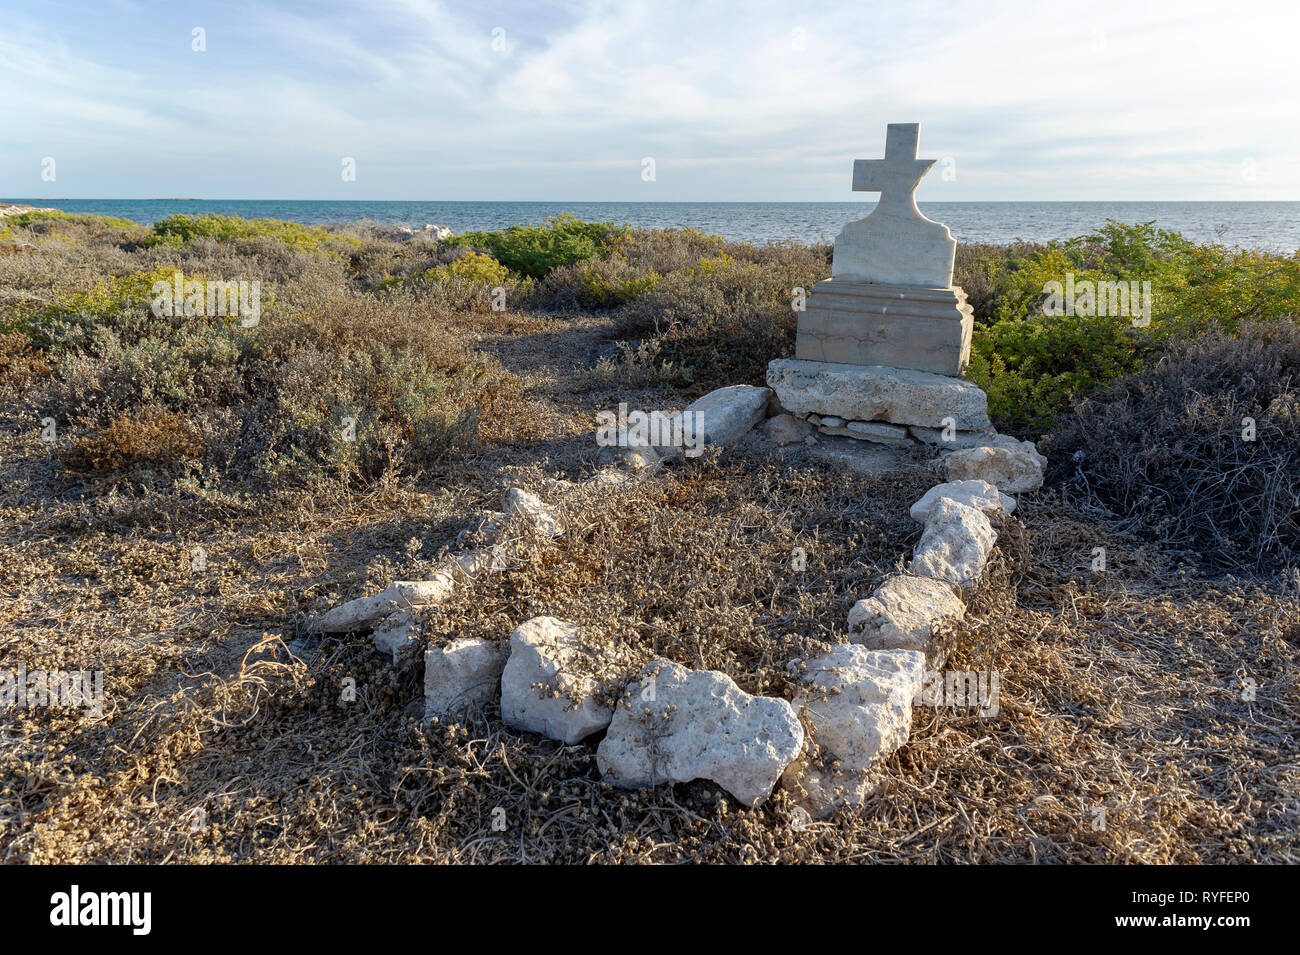 An abandoned gravesite on Big Rat Island, Houtman Abrolhos. The Houtman Abrolhos islands lie 60 kilometres off the coast of Geraldton in Western Austr Stock Photo